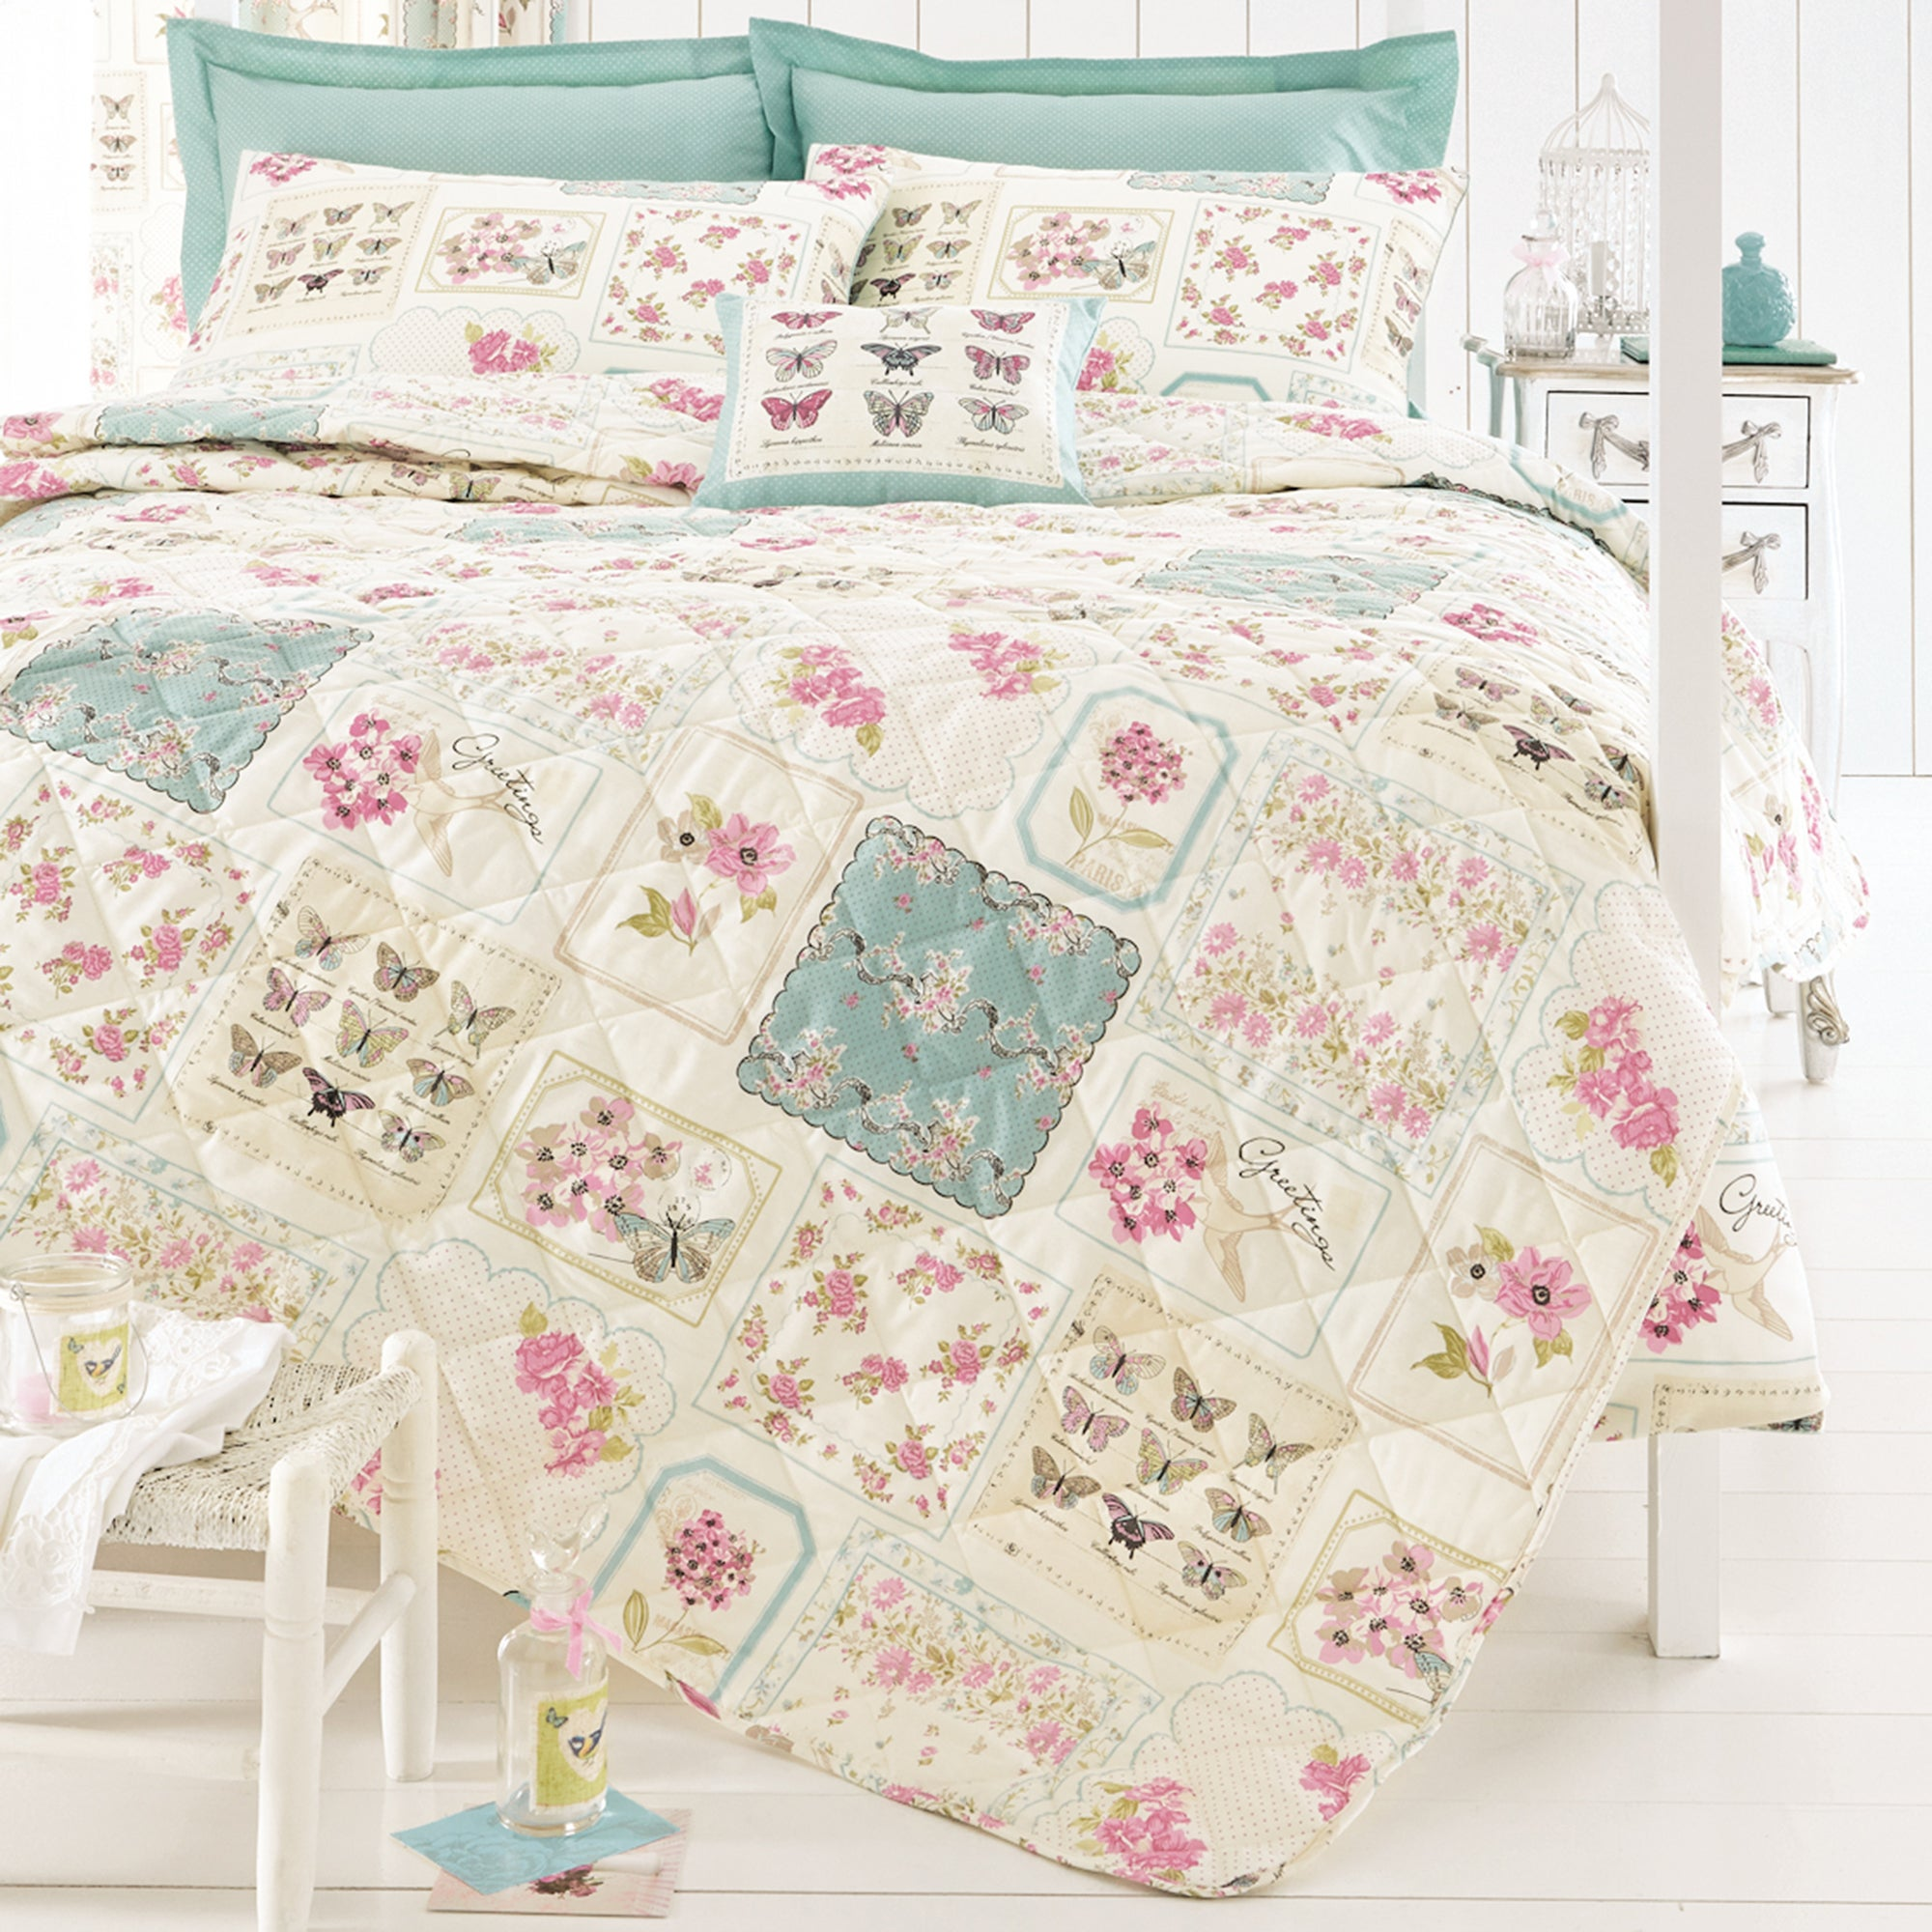 Duck Egg Maison Collection Bedspread